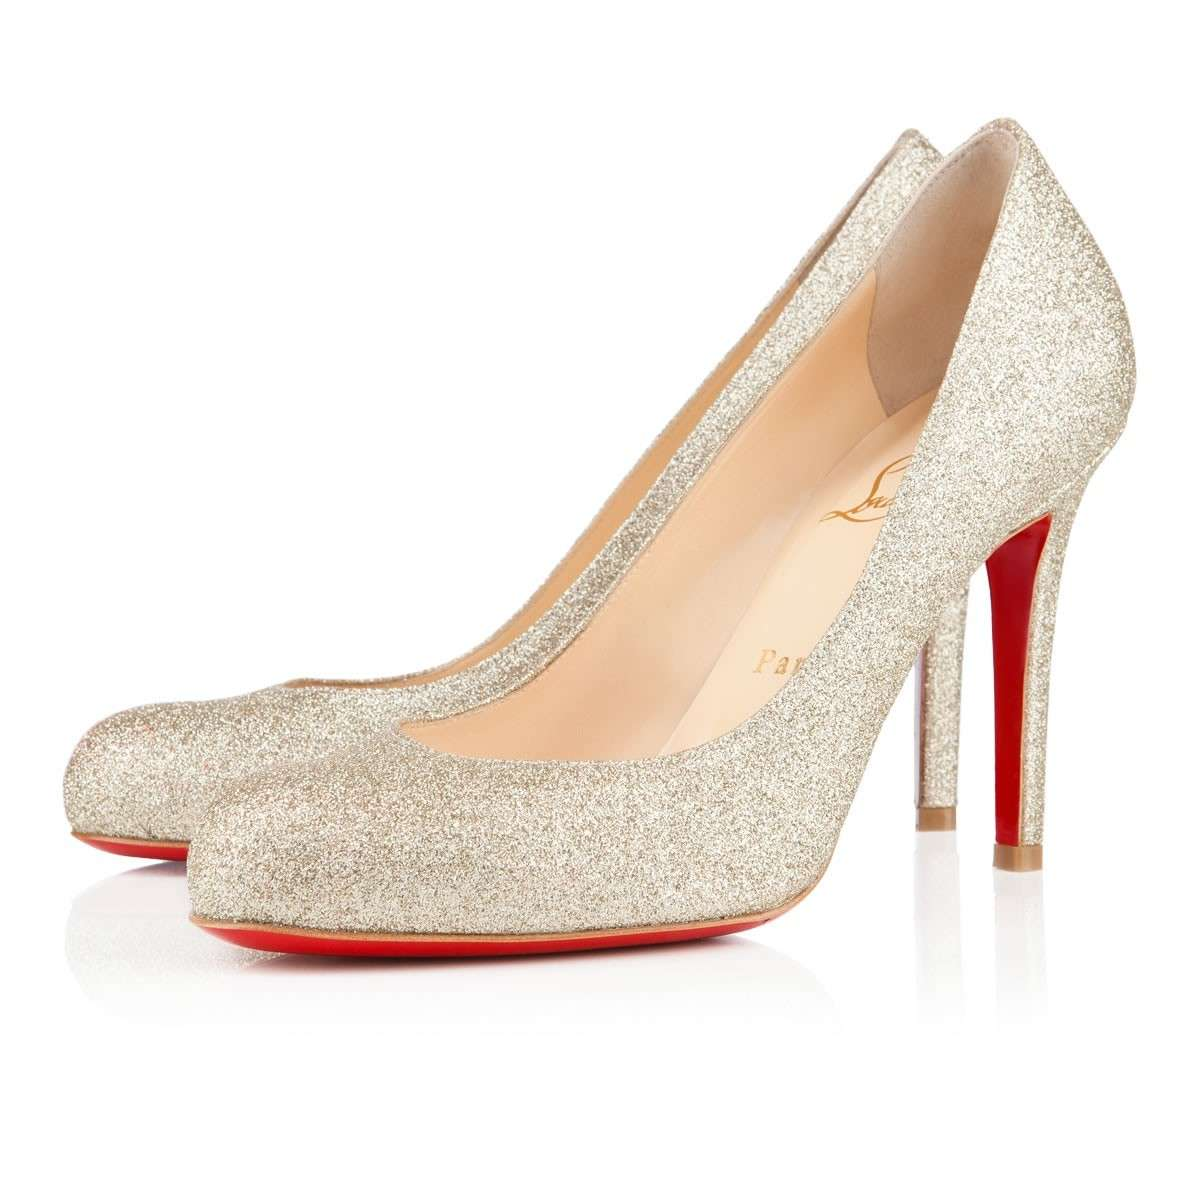 Simple Pump Glitter mini Louboutin